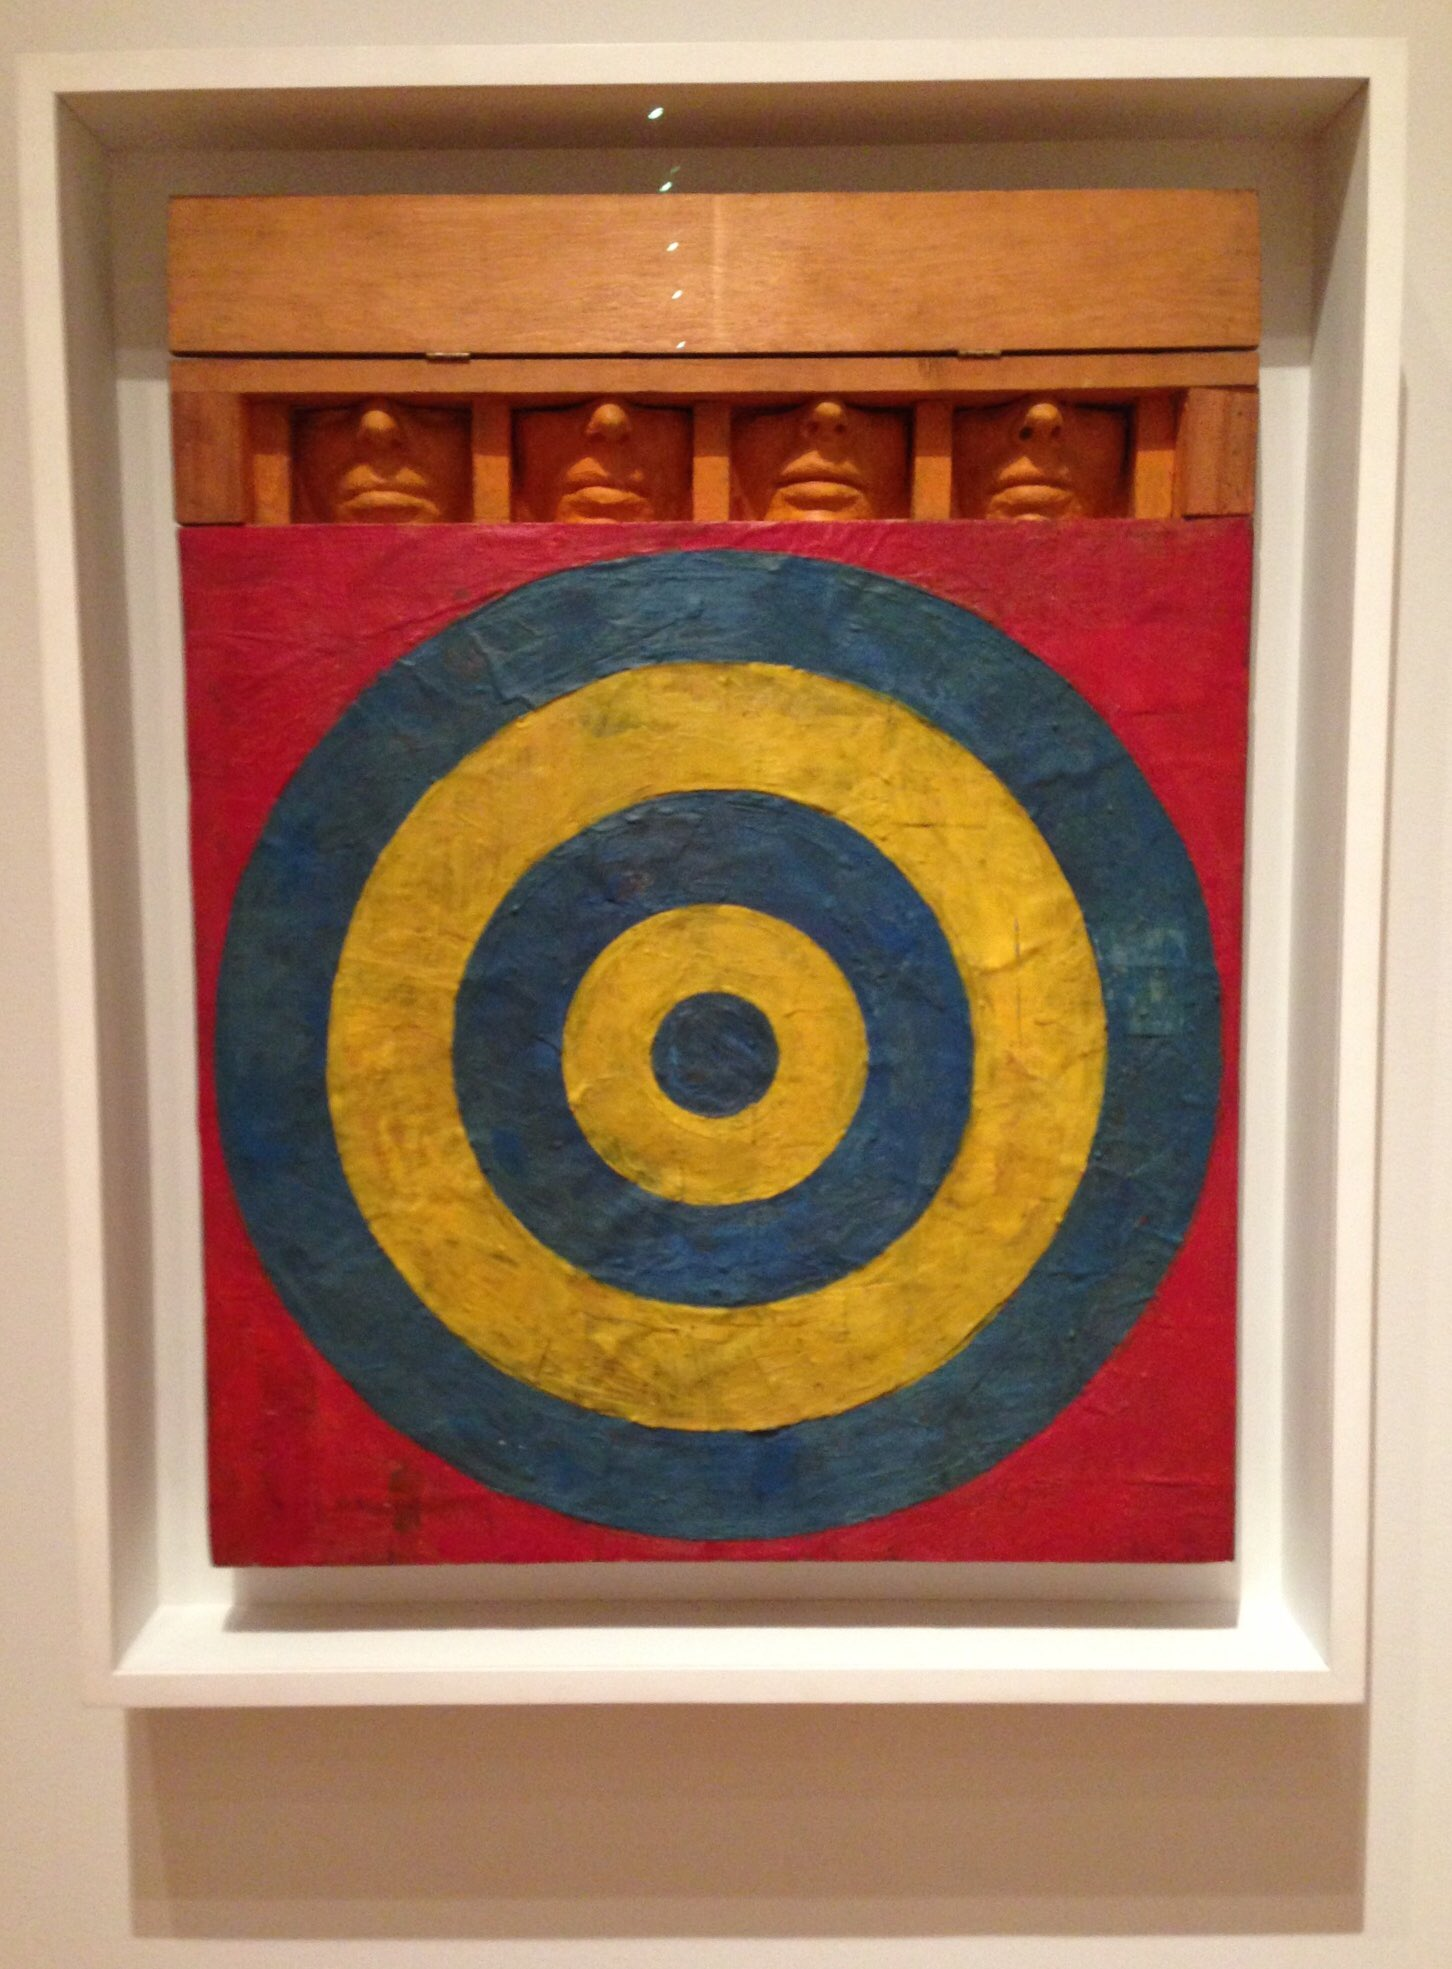 Happy Birthday Jasper Johns. I saw Target with Four Faces  in 2013